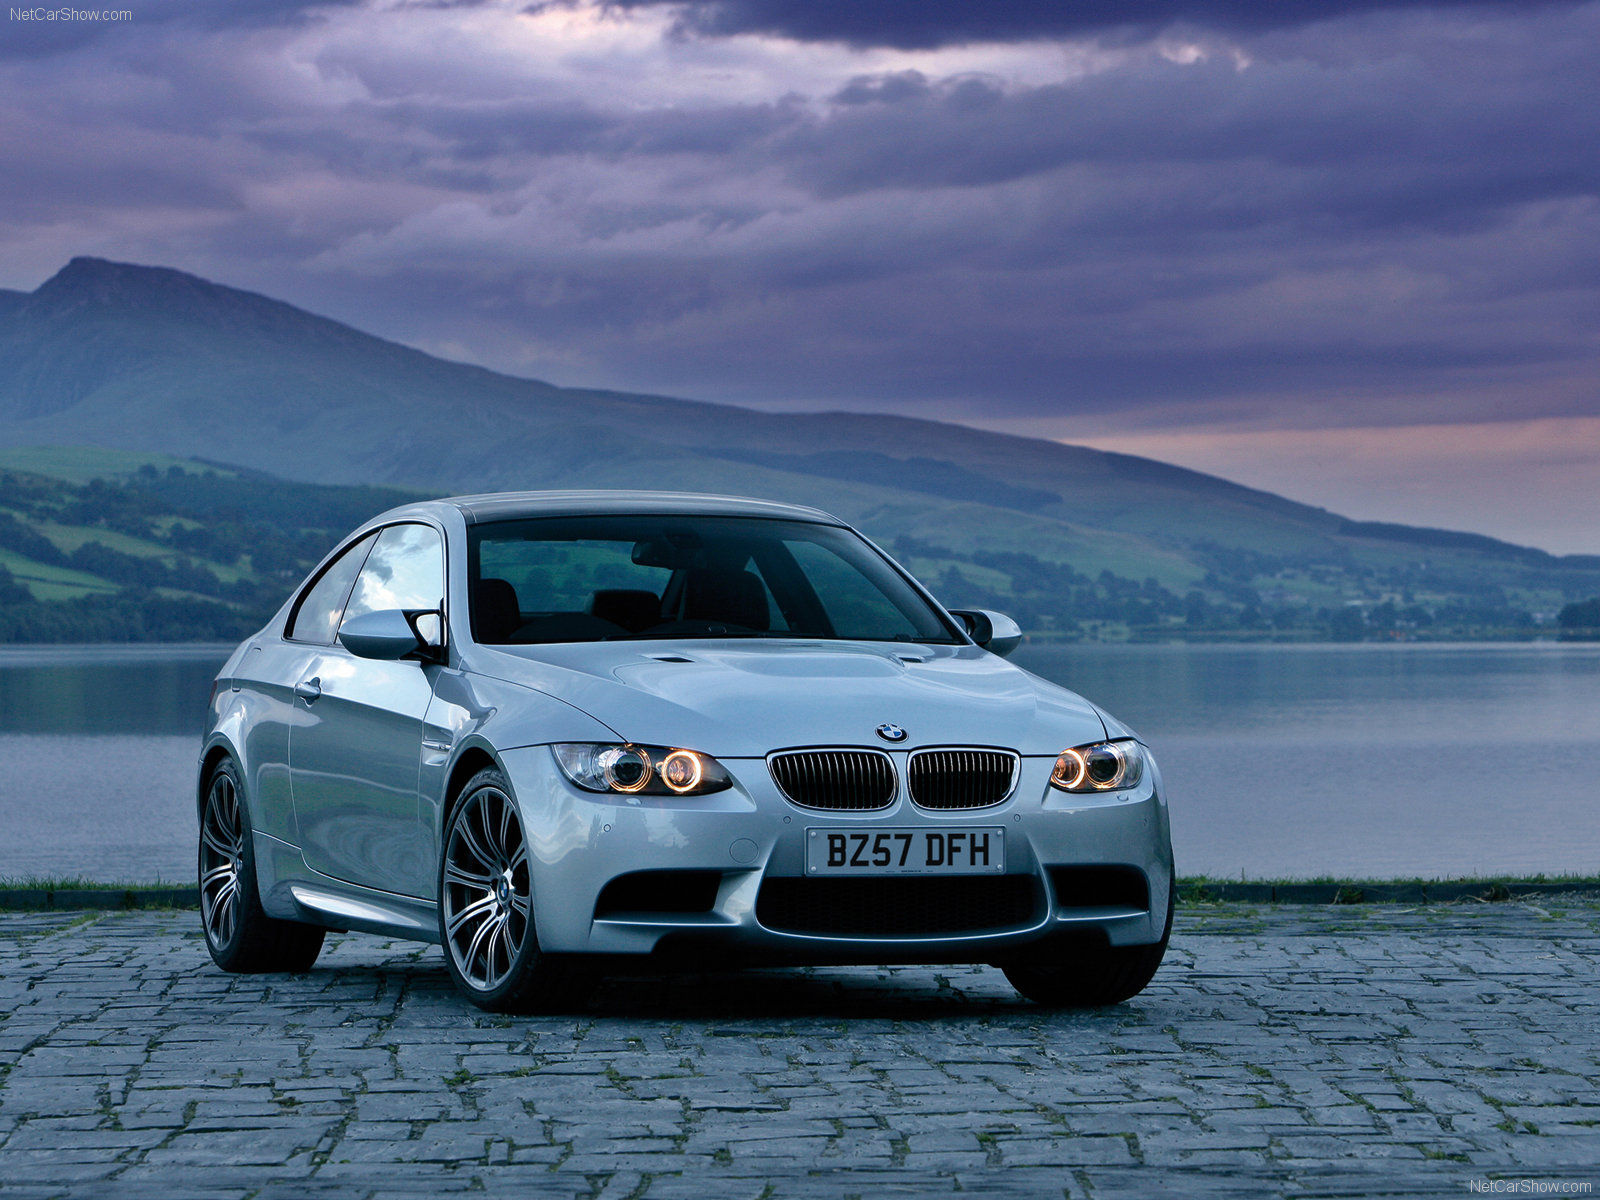 bmw m3 e92 coupe photos photo gallery page 3. Black Bedroom Furniture Sets. Home Design Ideas